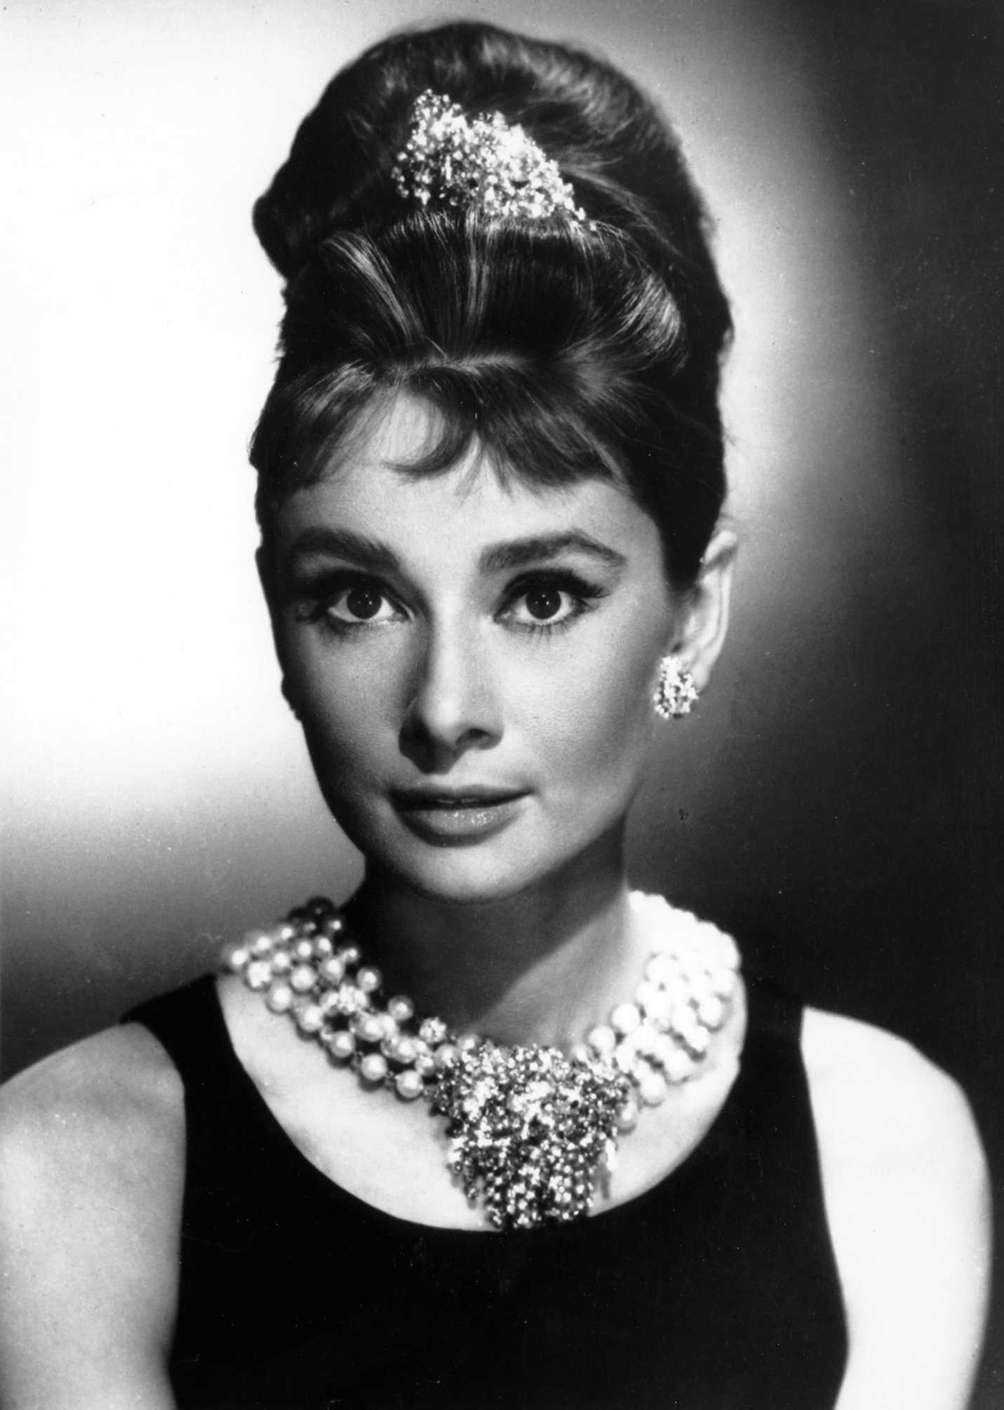 Audrey Hepburn was born in Brussels to a